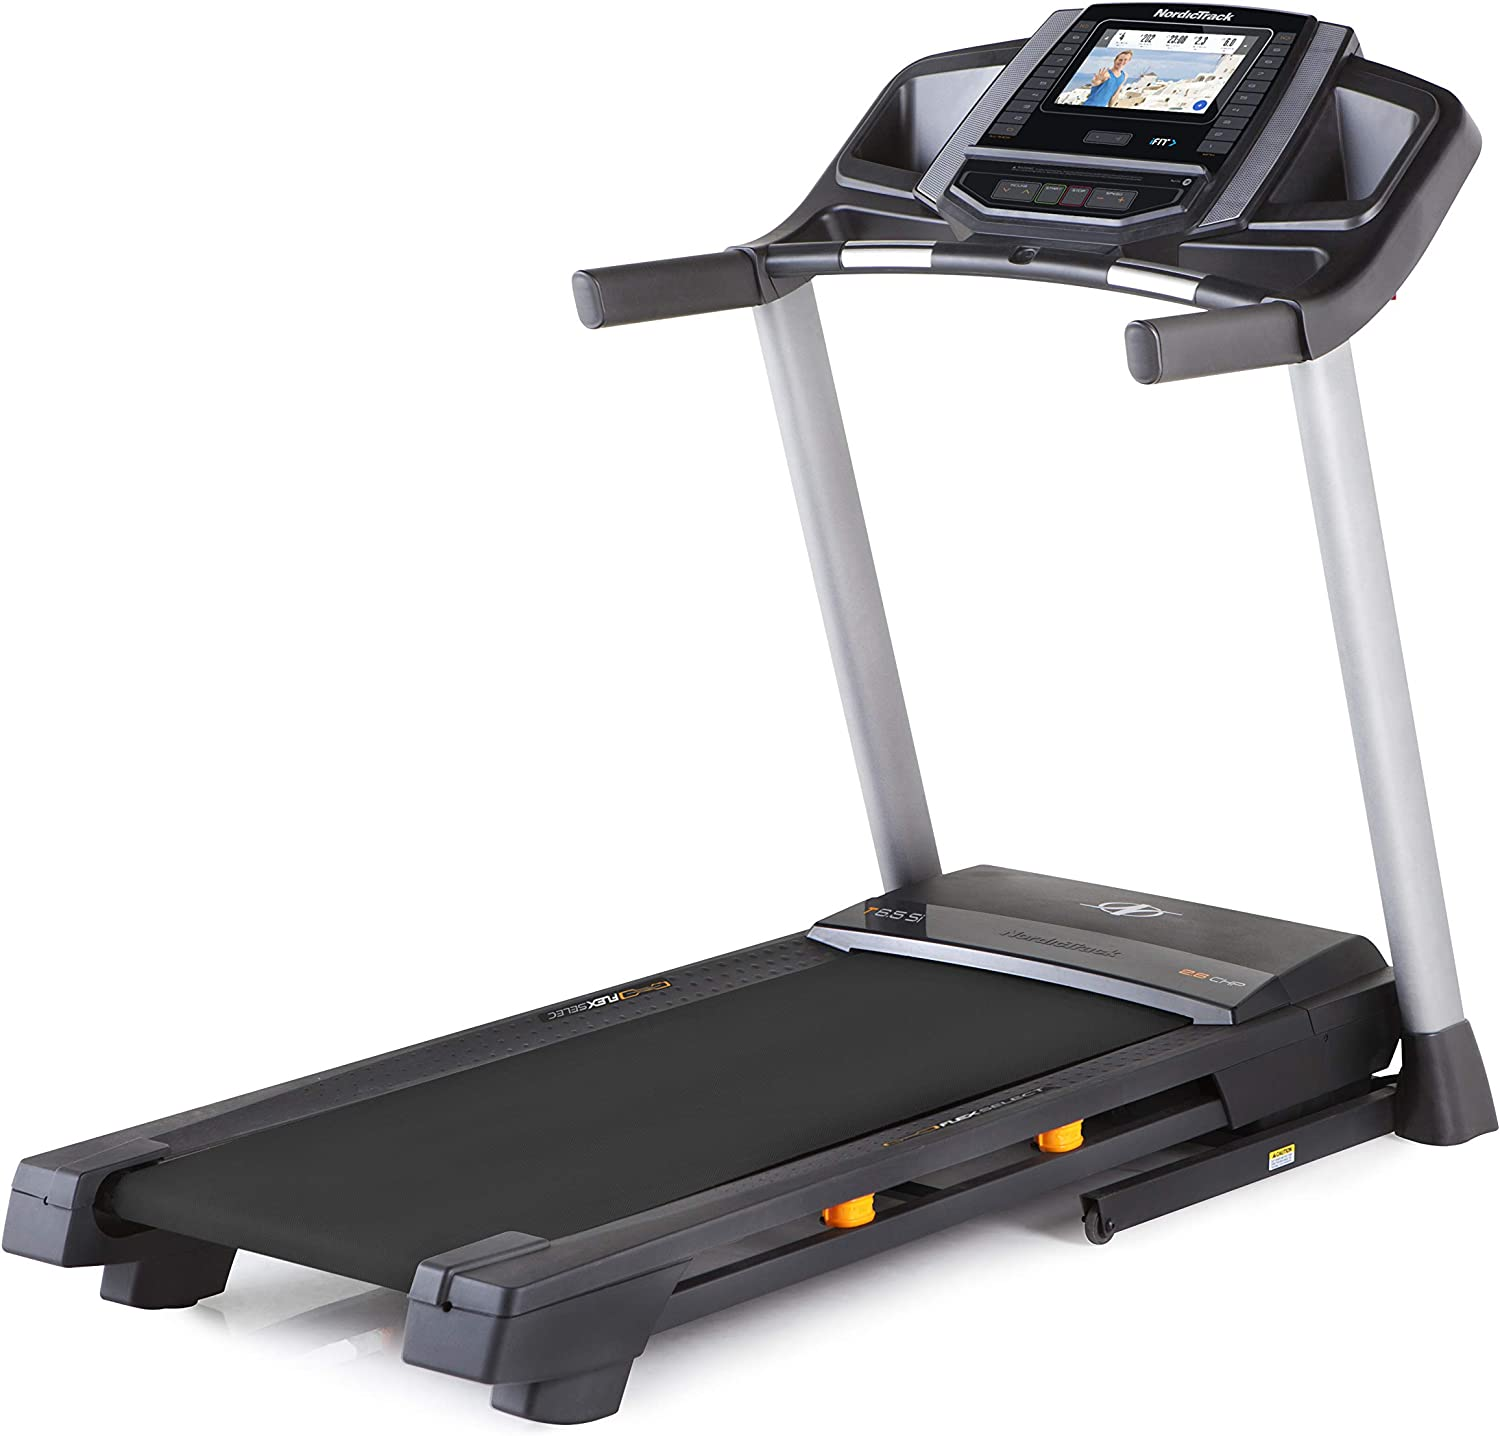 Proform 650 Lt Treadmill